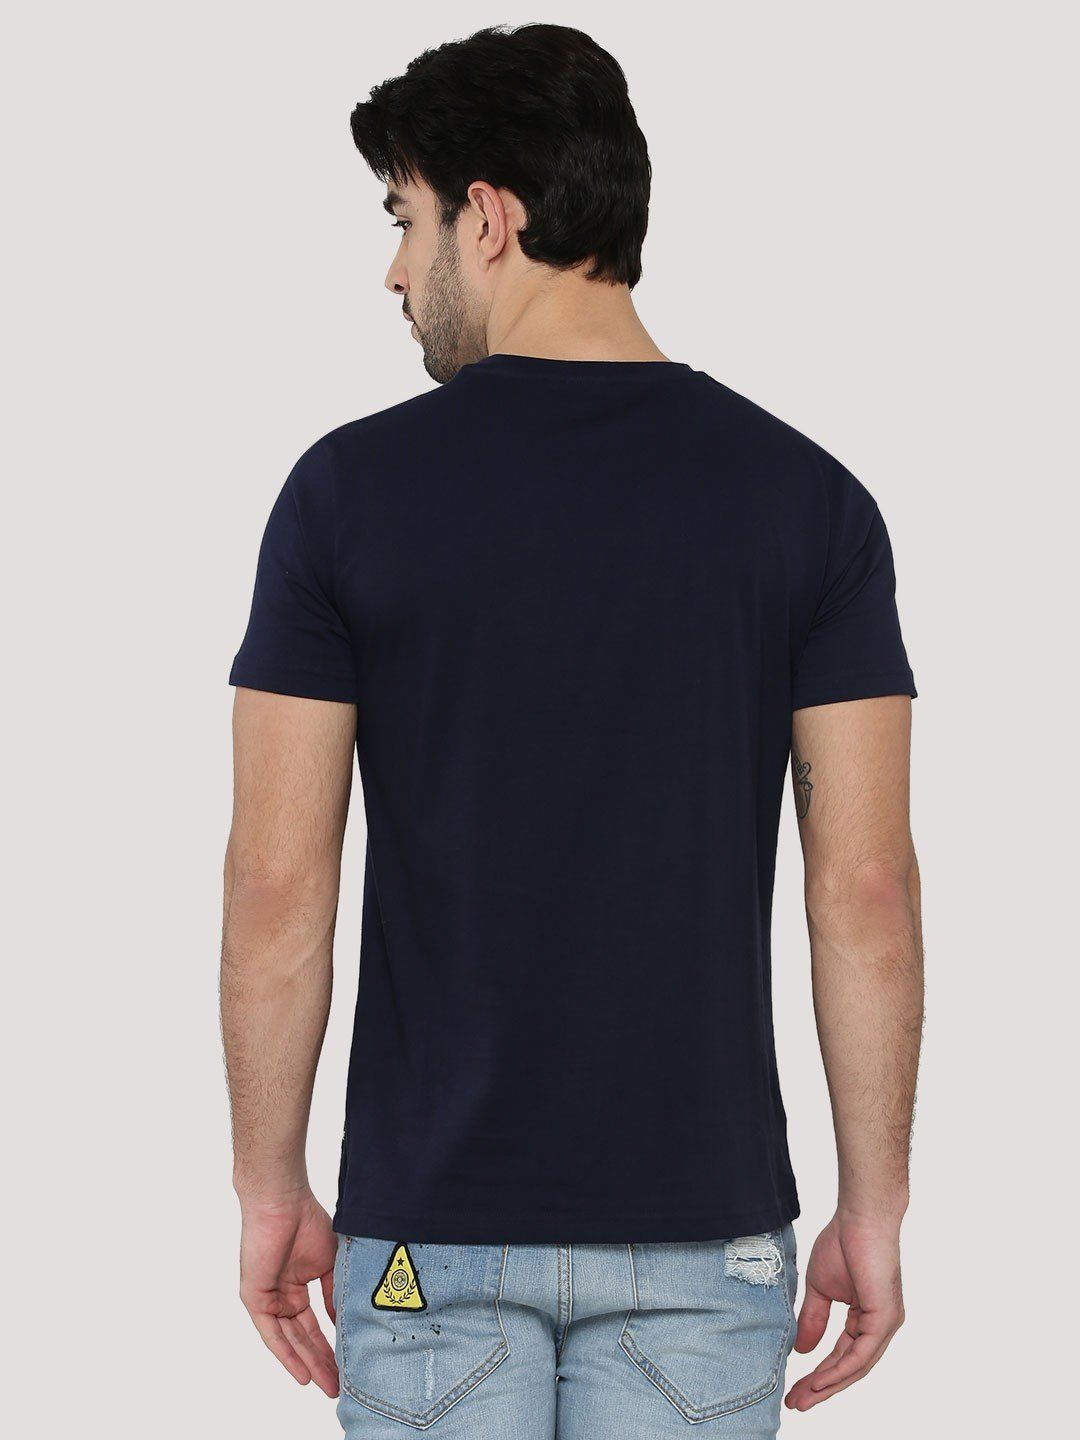 Patron And Chill Navy Blue T-Shirt - Fighting Fame  - 4